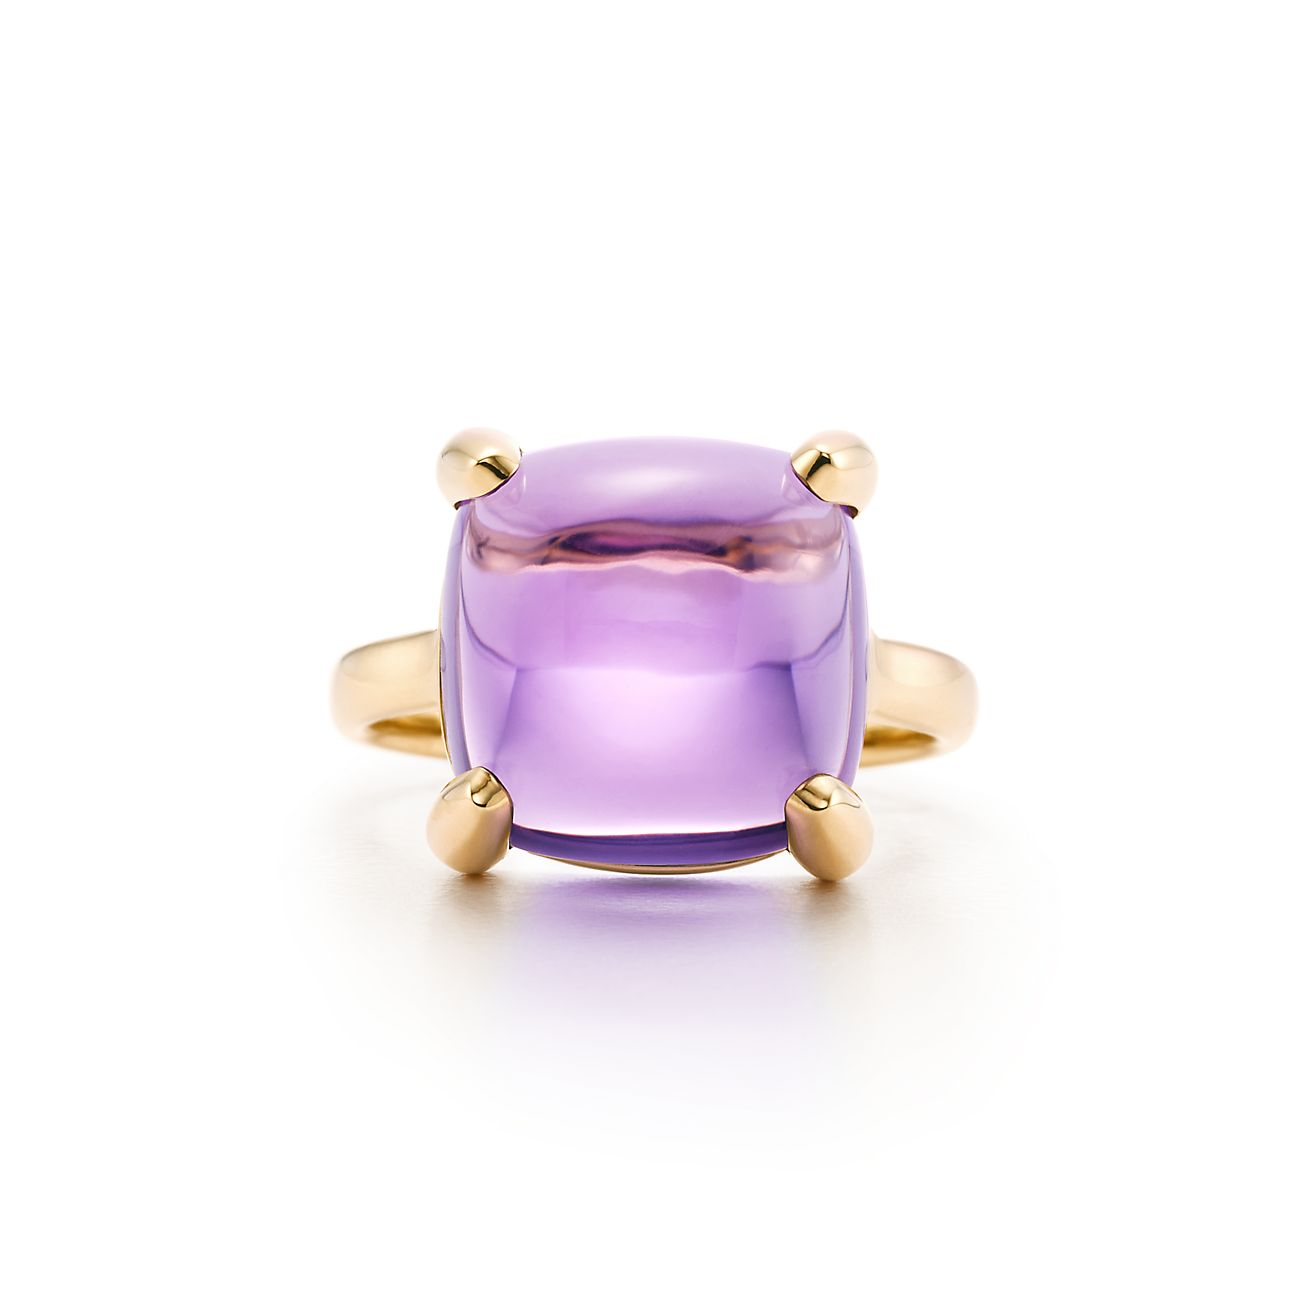 Palomas Sugar Stacks ring in 18k gold with an amethyst - Size 5 Tiffany & Co.